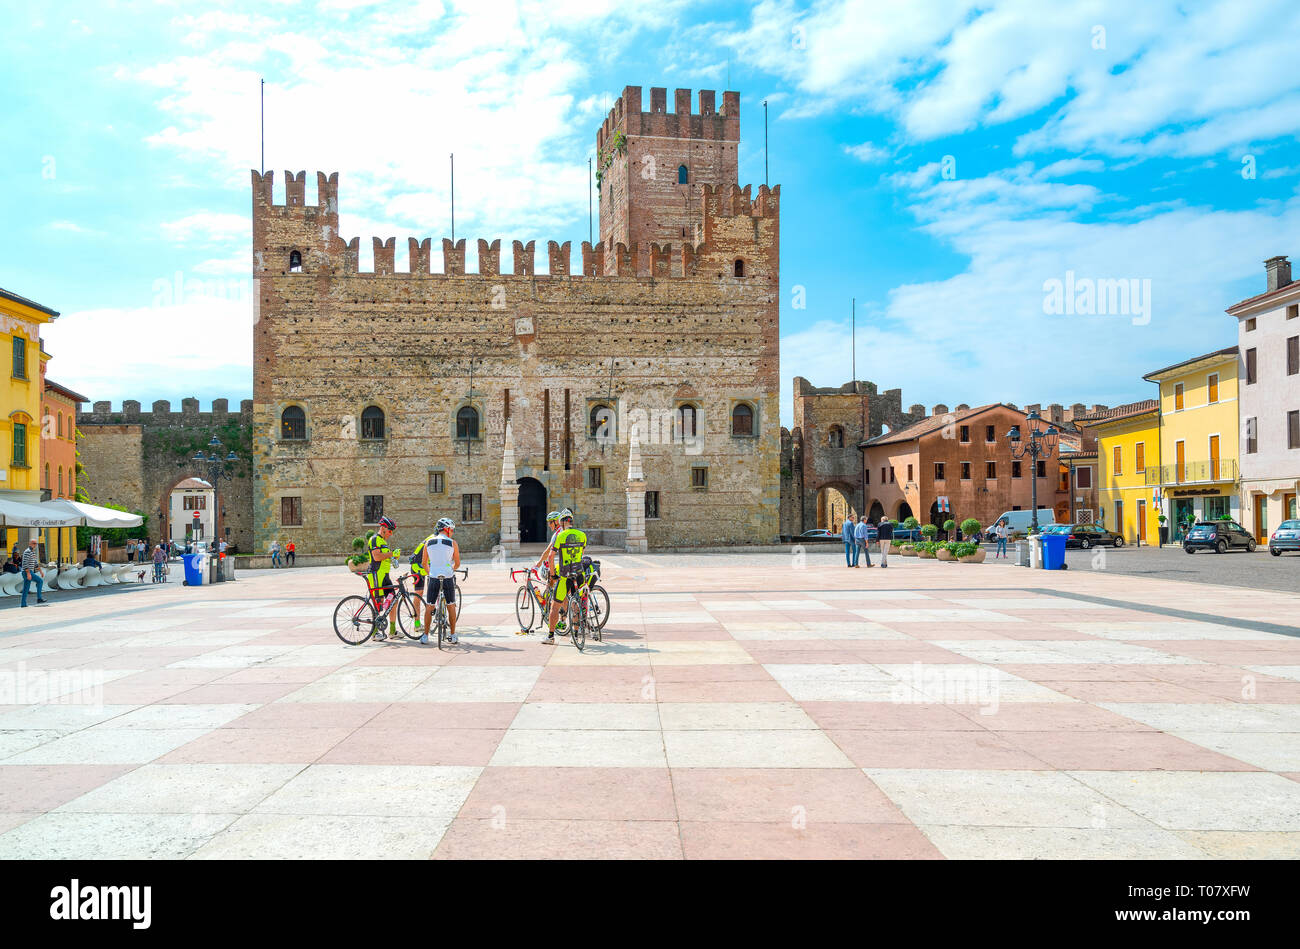 Italy, Marostica, The square where the traditional chess game is played with the Lower Castle in the background - Stock Image